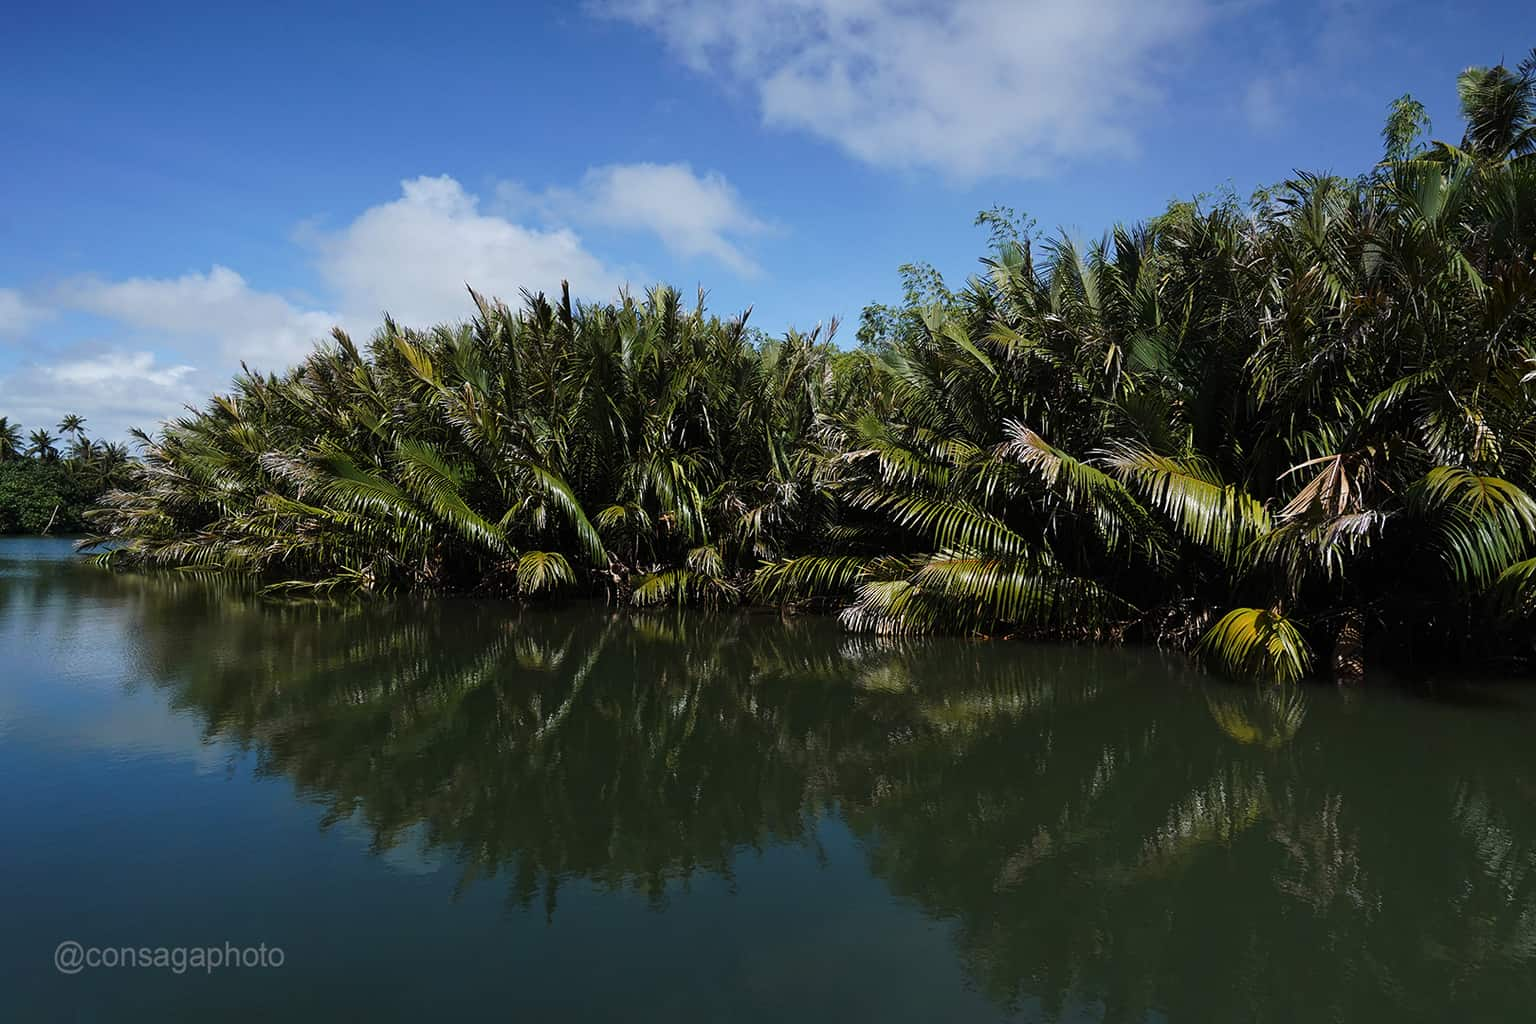 An Outdoor Adventure with a River cruise Things to do on Guam Photo Walk Tour with Victor Consaga